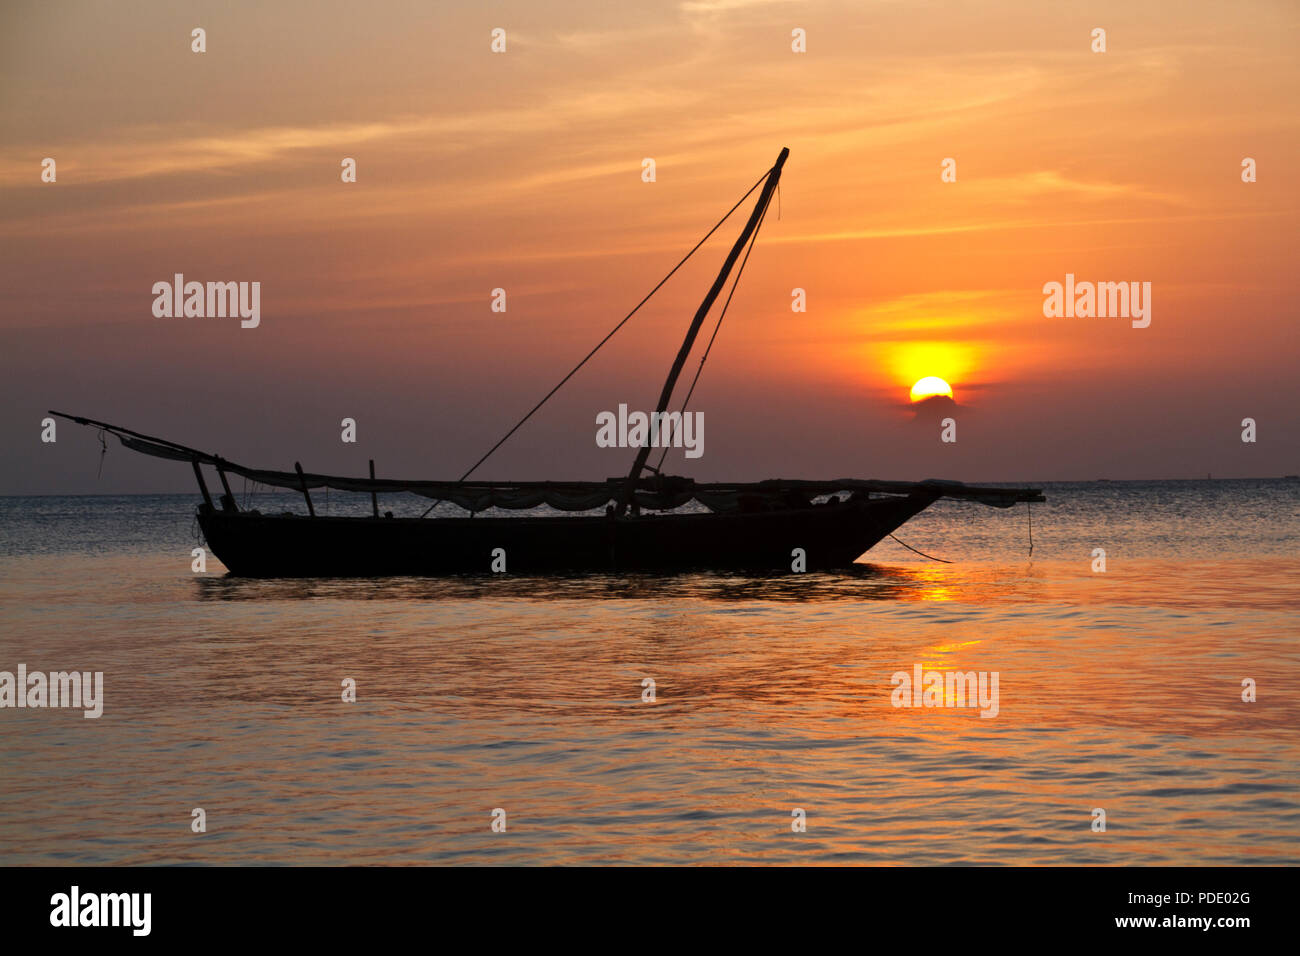 A traditional Johazi is moored off the coast of Zanzibar. A small sailing vessel still in common use along the East African Coast. - Stock Image